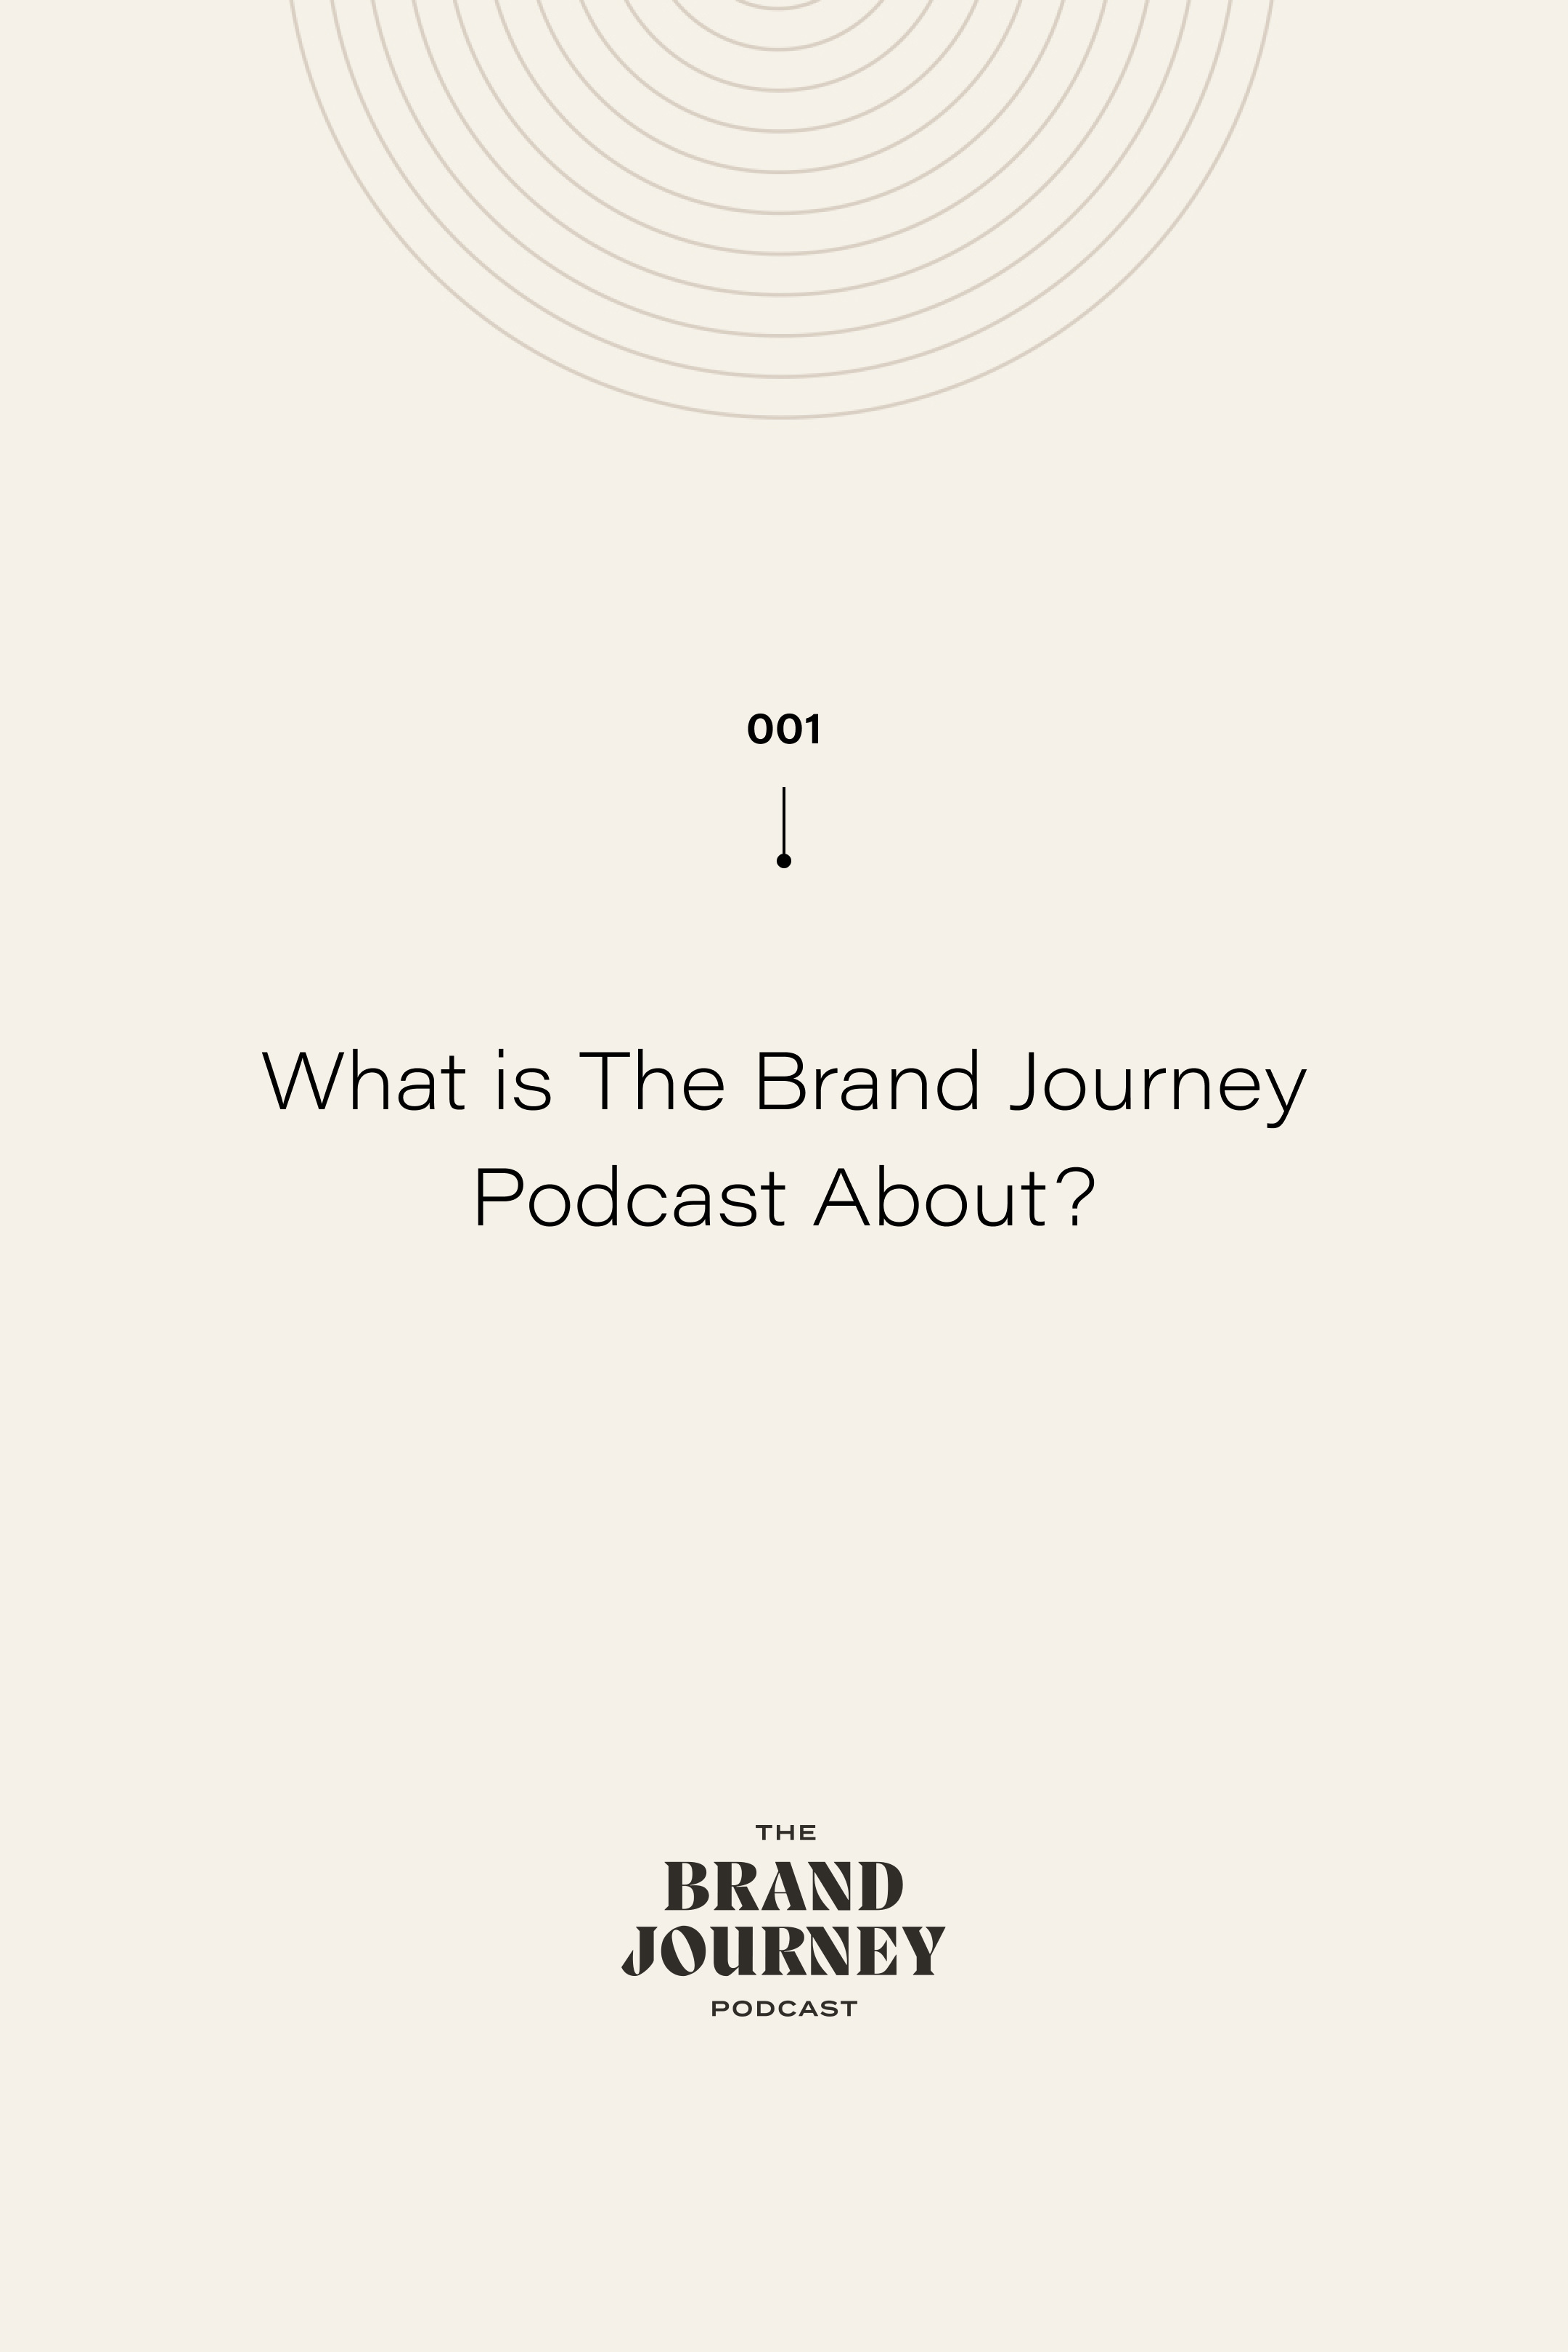 About the Brand Journey Podcast